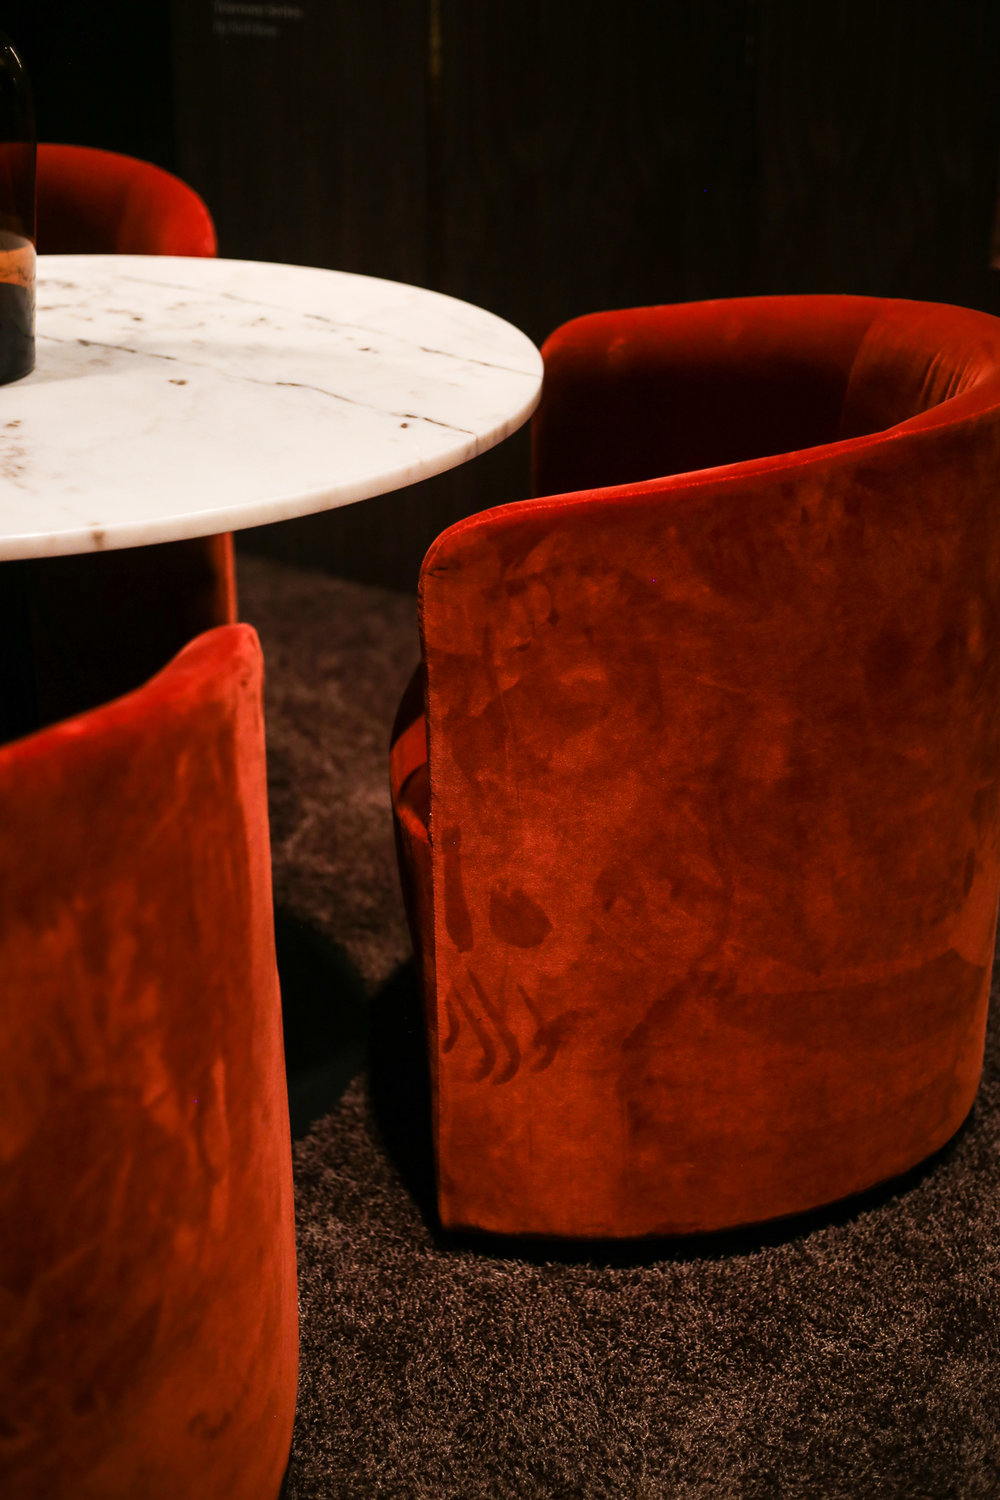 Trendspaning_Stockholm_swedish_furniture_fair_HannaWendelbo-23.jpg